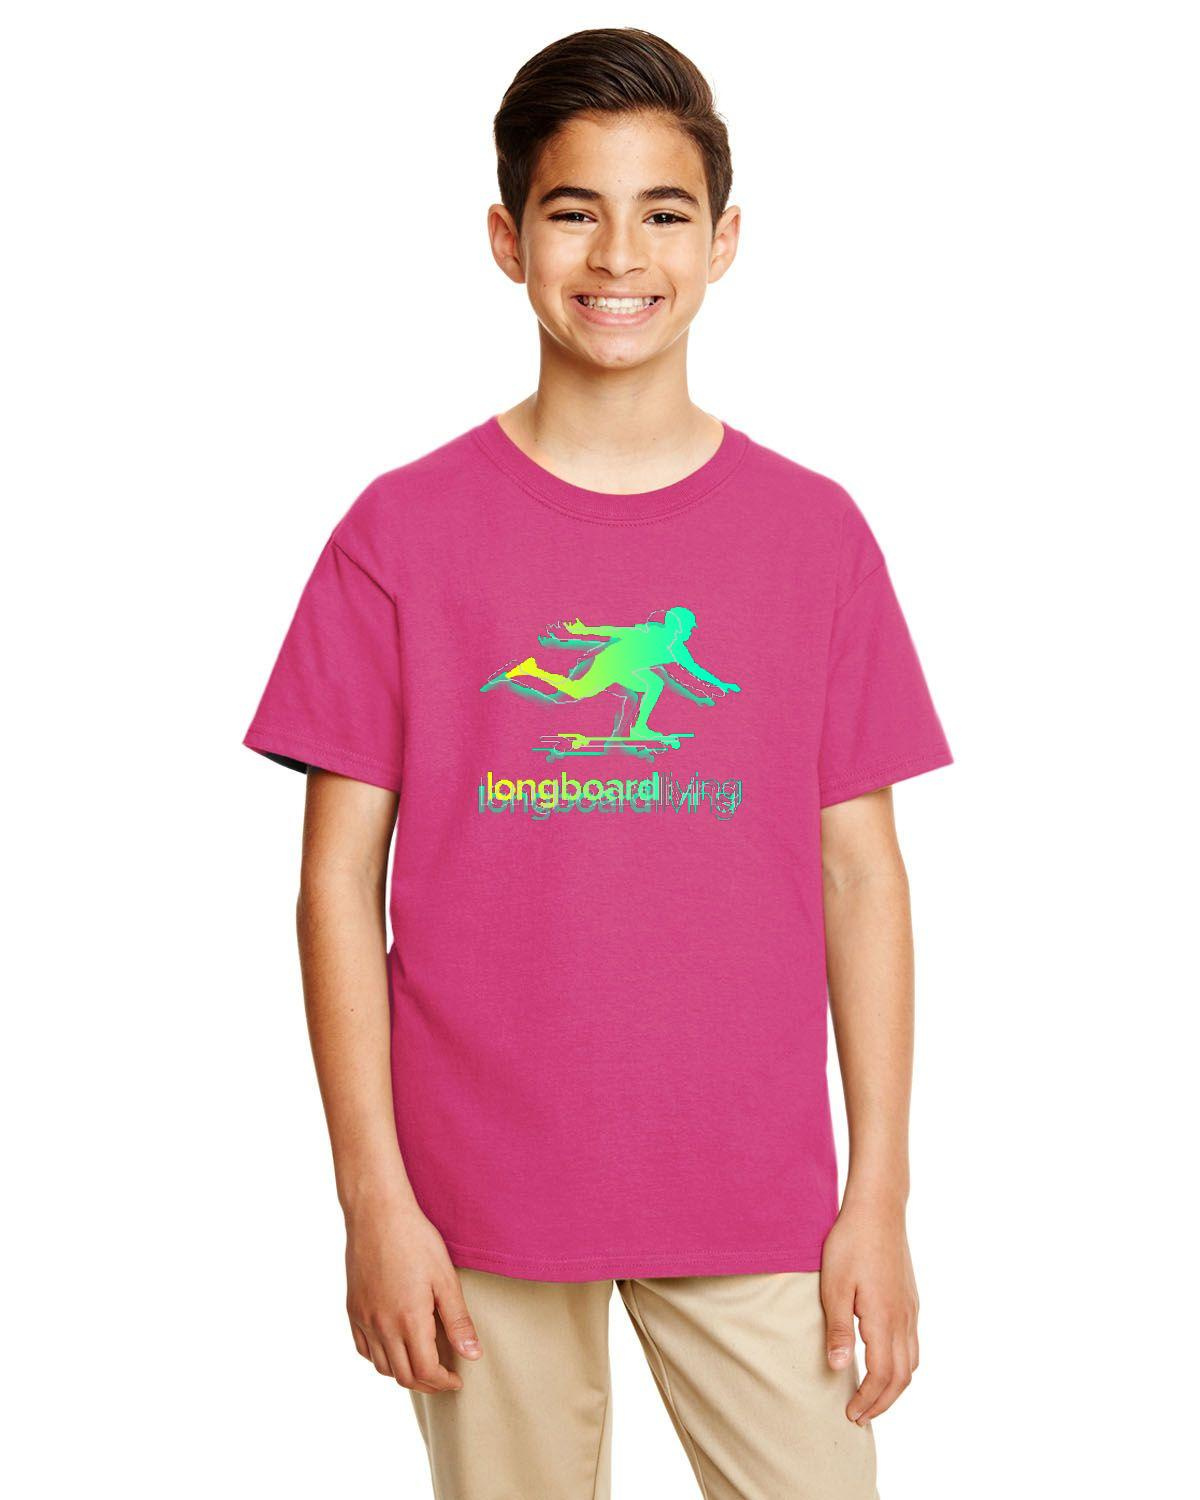 Longboard Living Stencil Shirt - YOUTH